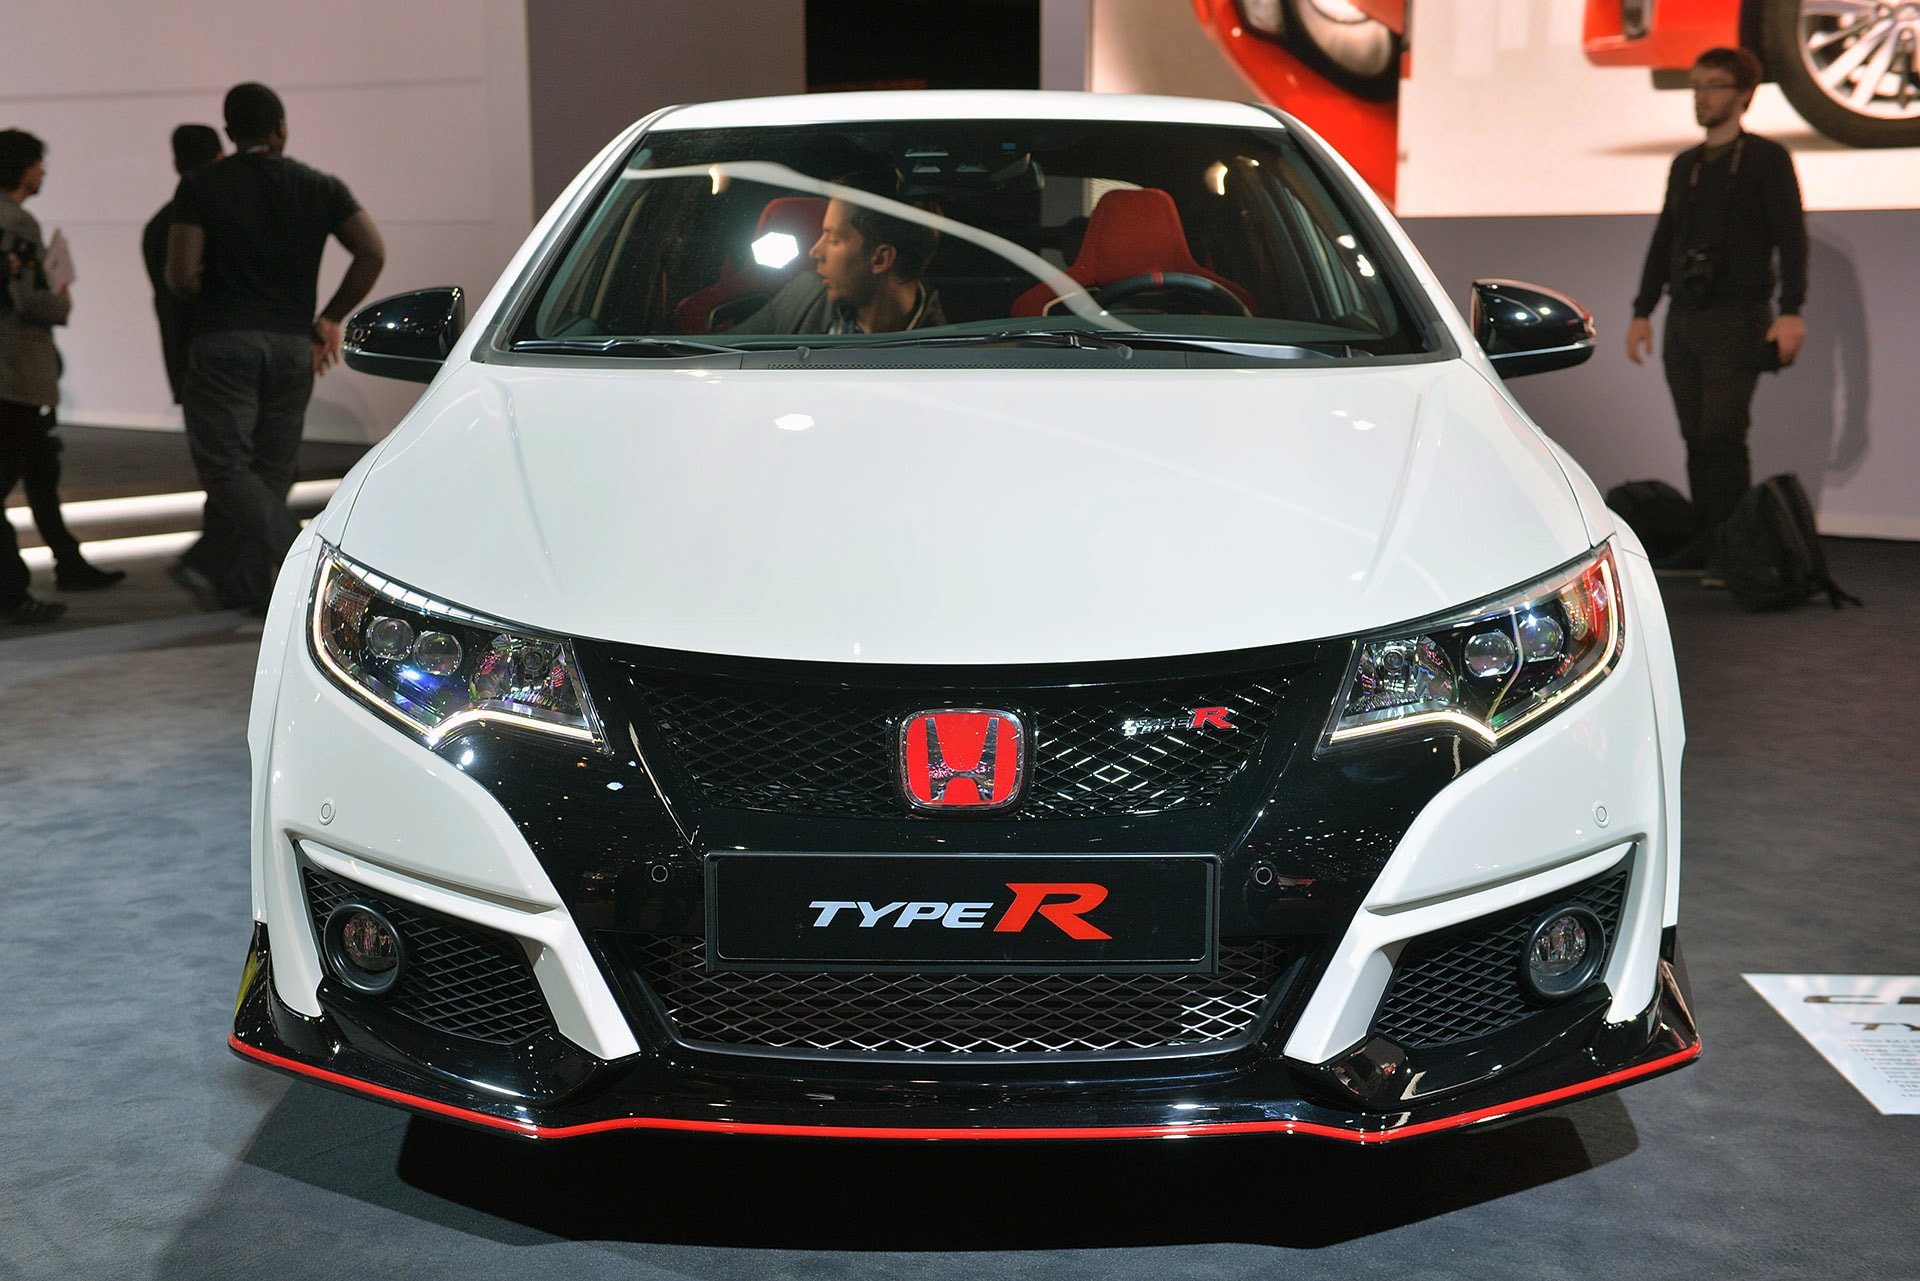 Honda Civic Type-R Backgrounds